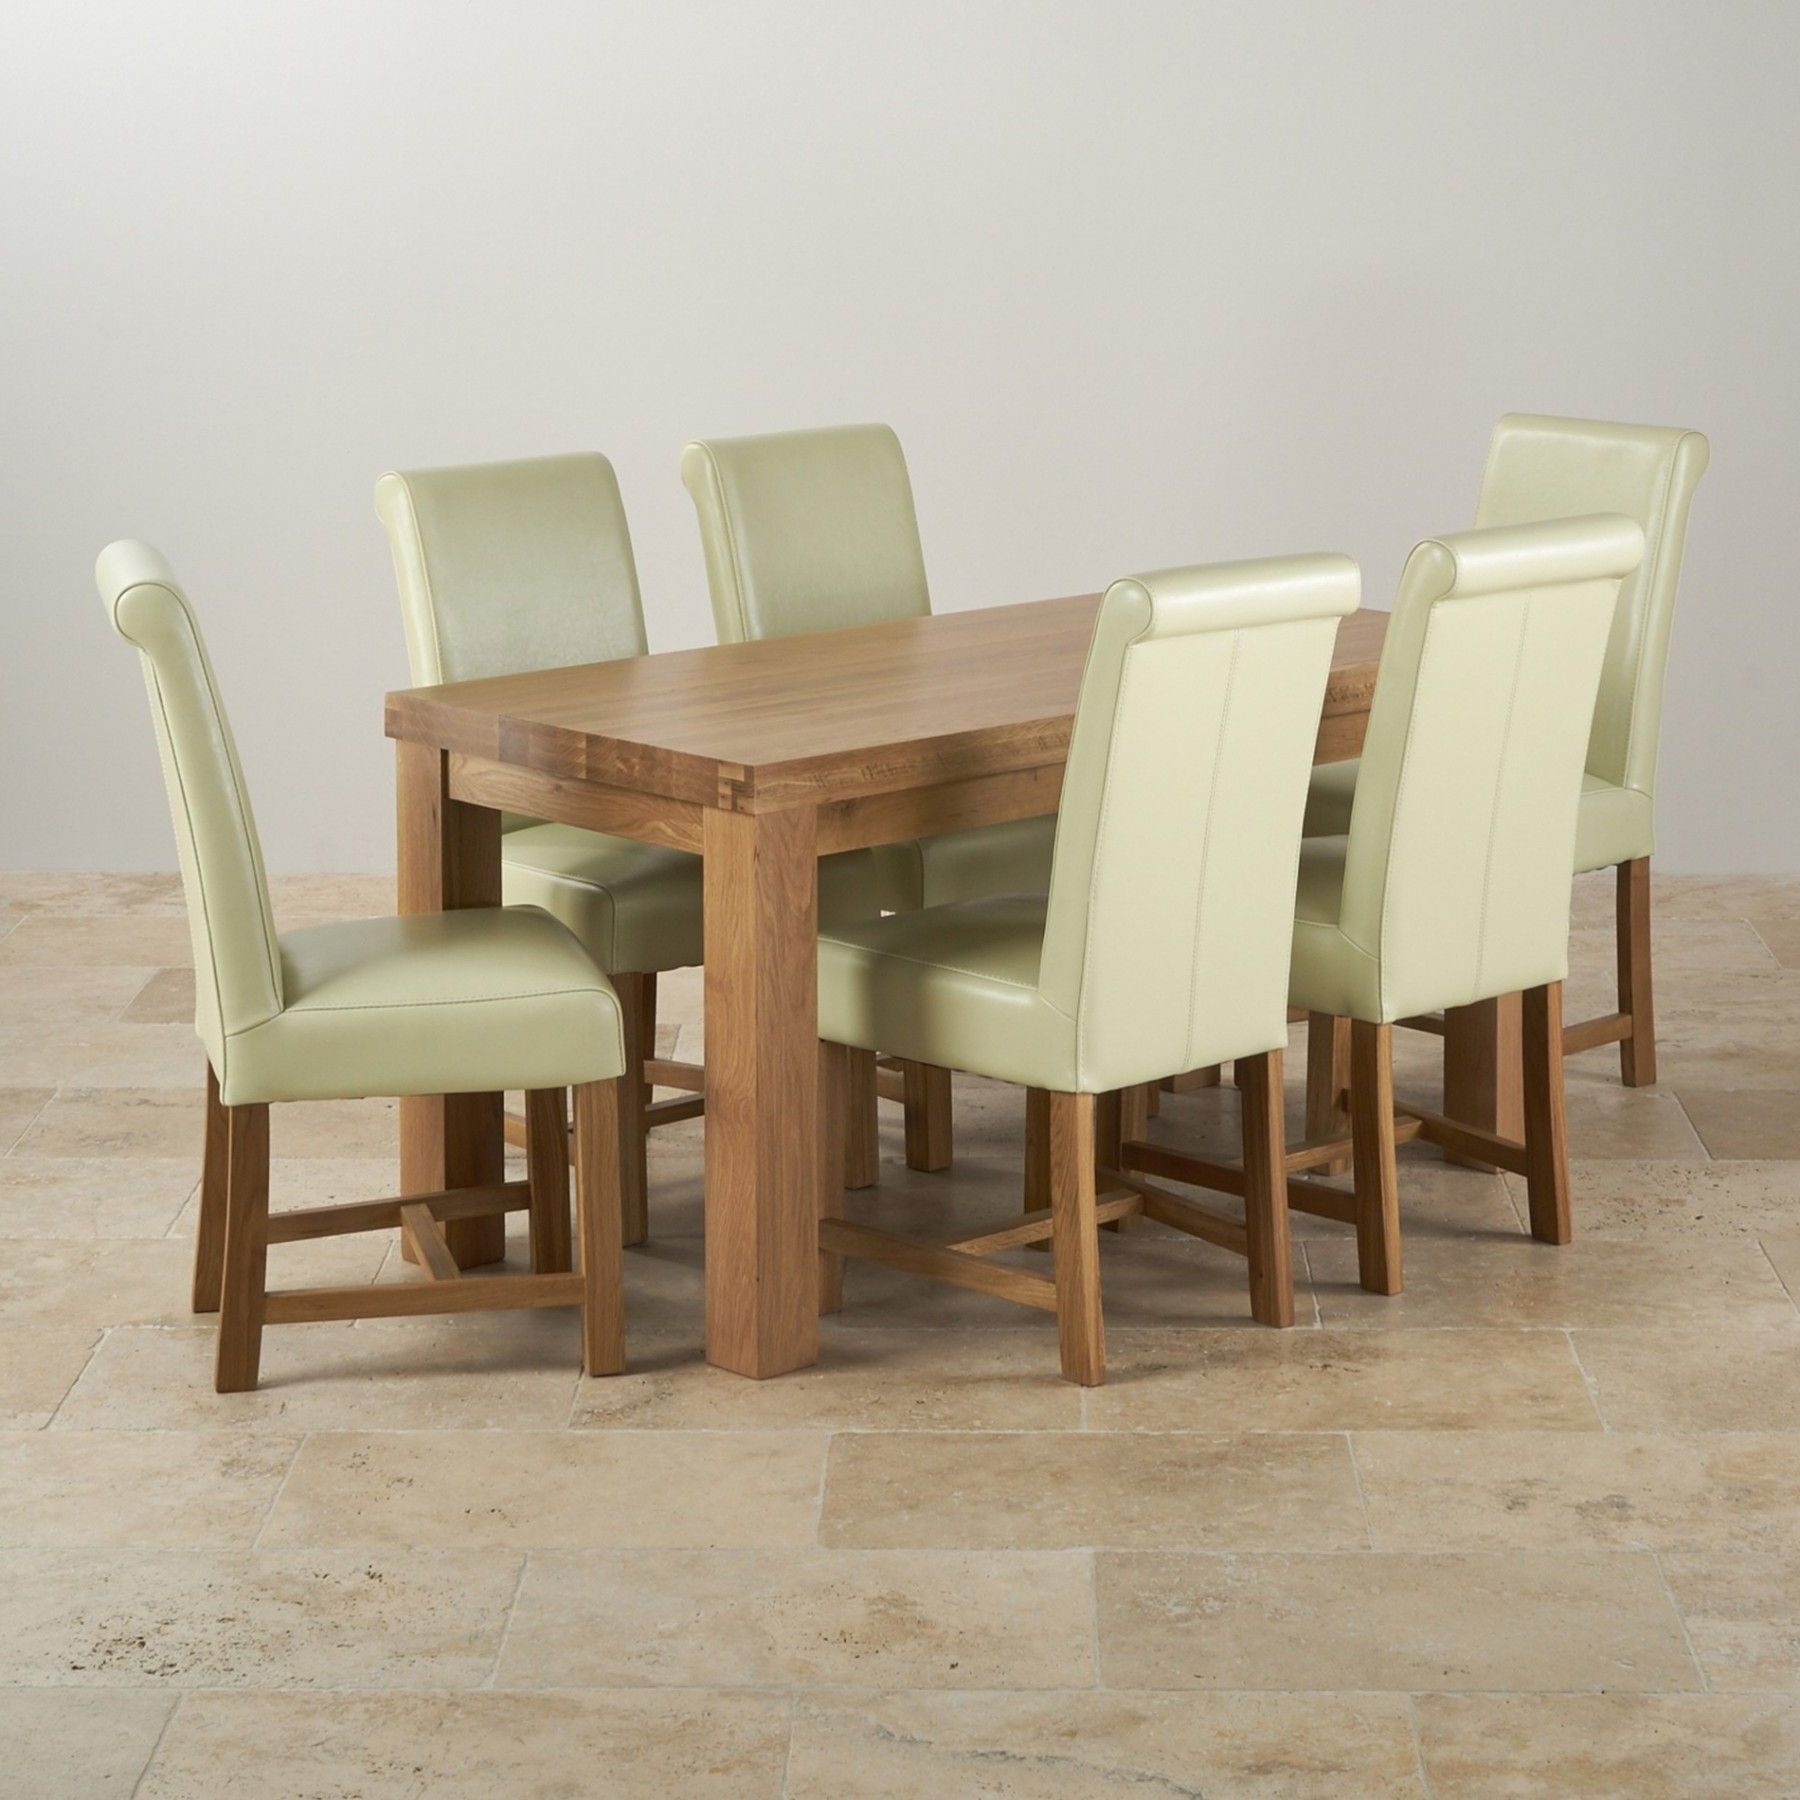 Recent This Modern Dining Set Consists Of A Chunky 5Ft Dining Table And 6 Within Chunky Solid Oak Dining Tables And 6 Chairs (View 7 of 25)